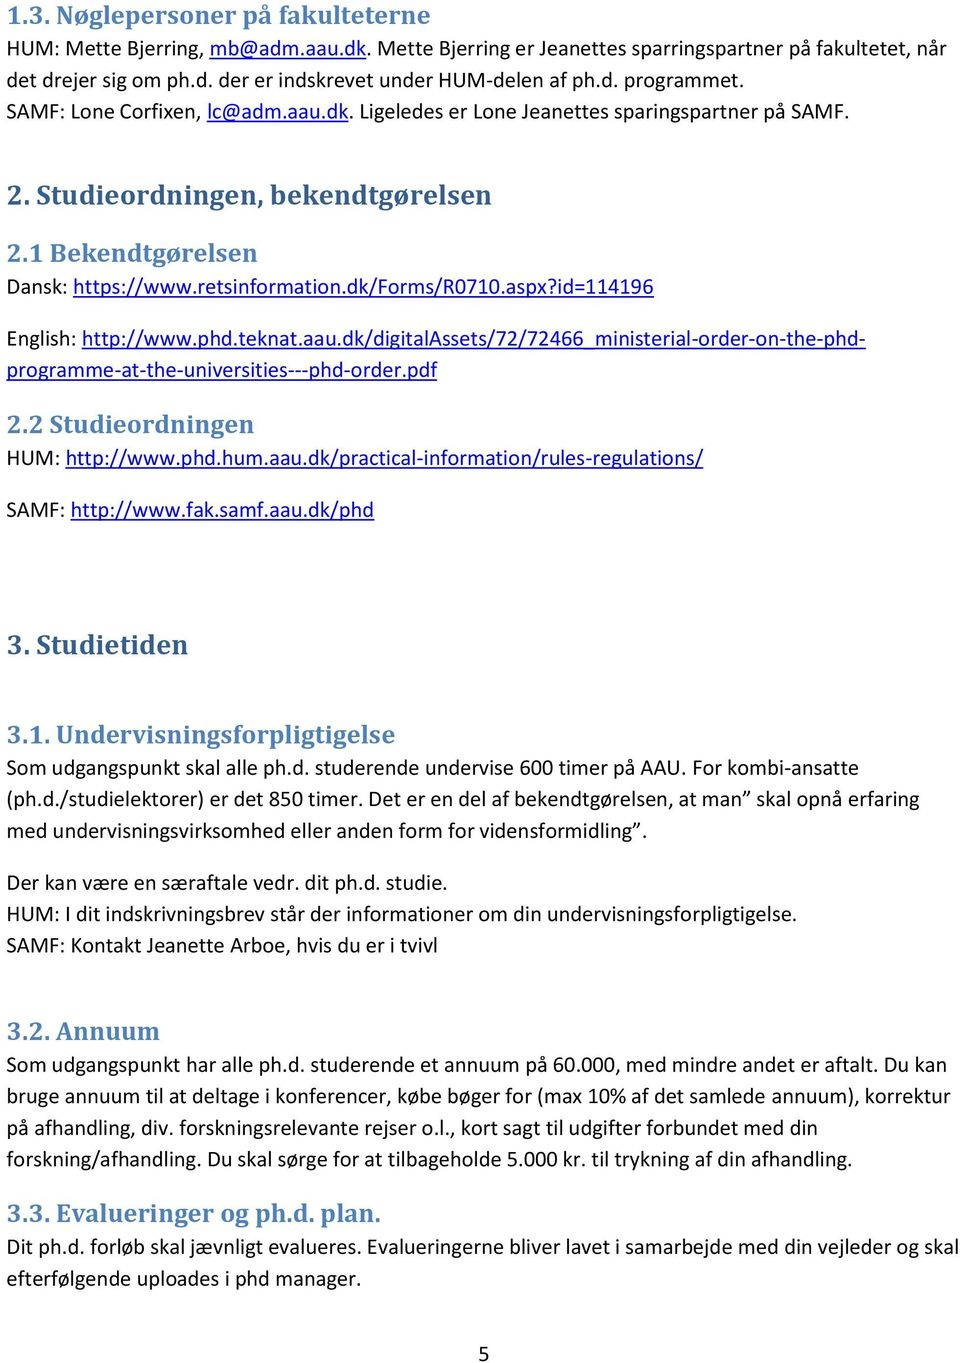 dk/forms/r0710.aspx?id=114196 English: http://www.phd.teknat.aau.dk/digitalassets/72/72466_ministerial-order-on-the-phdprogramme-at-the-universities---phd-order.pdf 2.